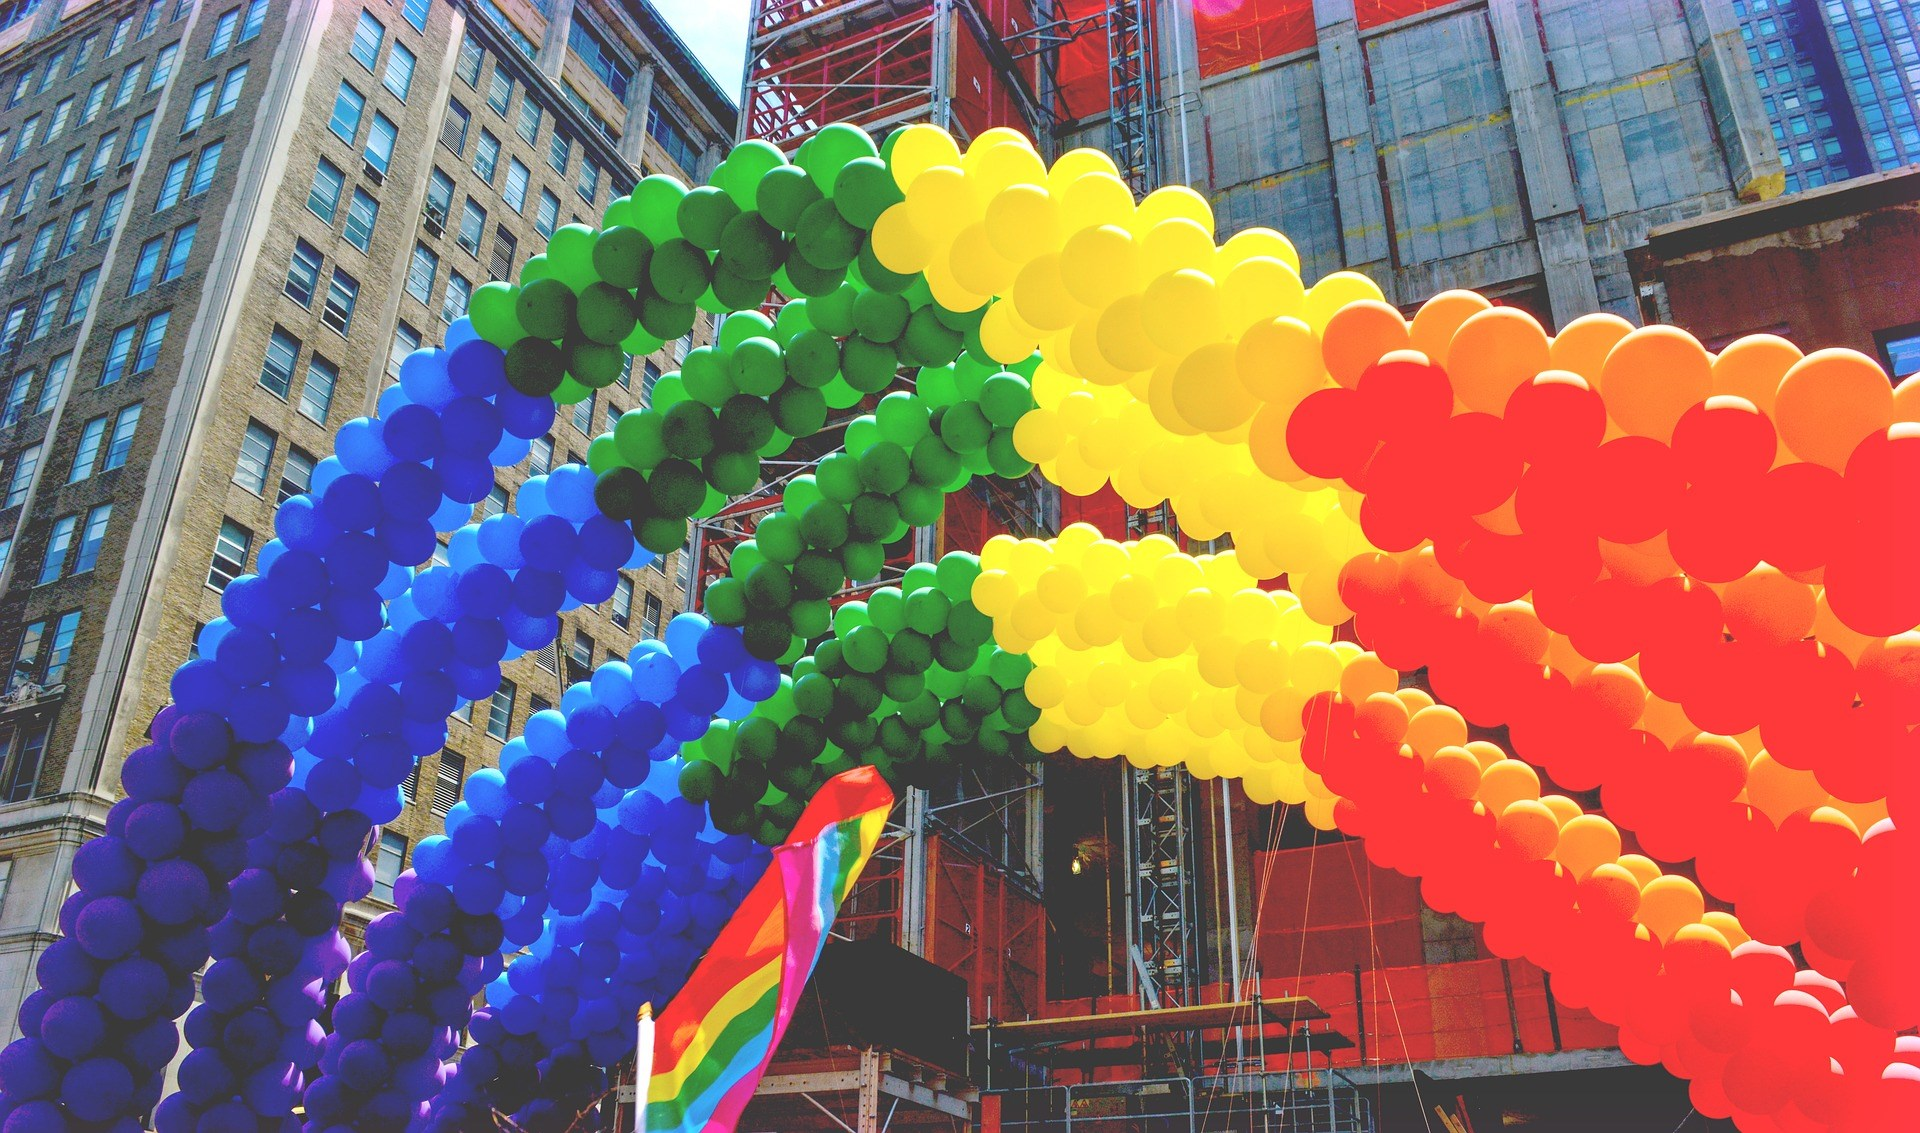 Alexander celebrates Pride including complimentary excursions